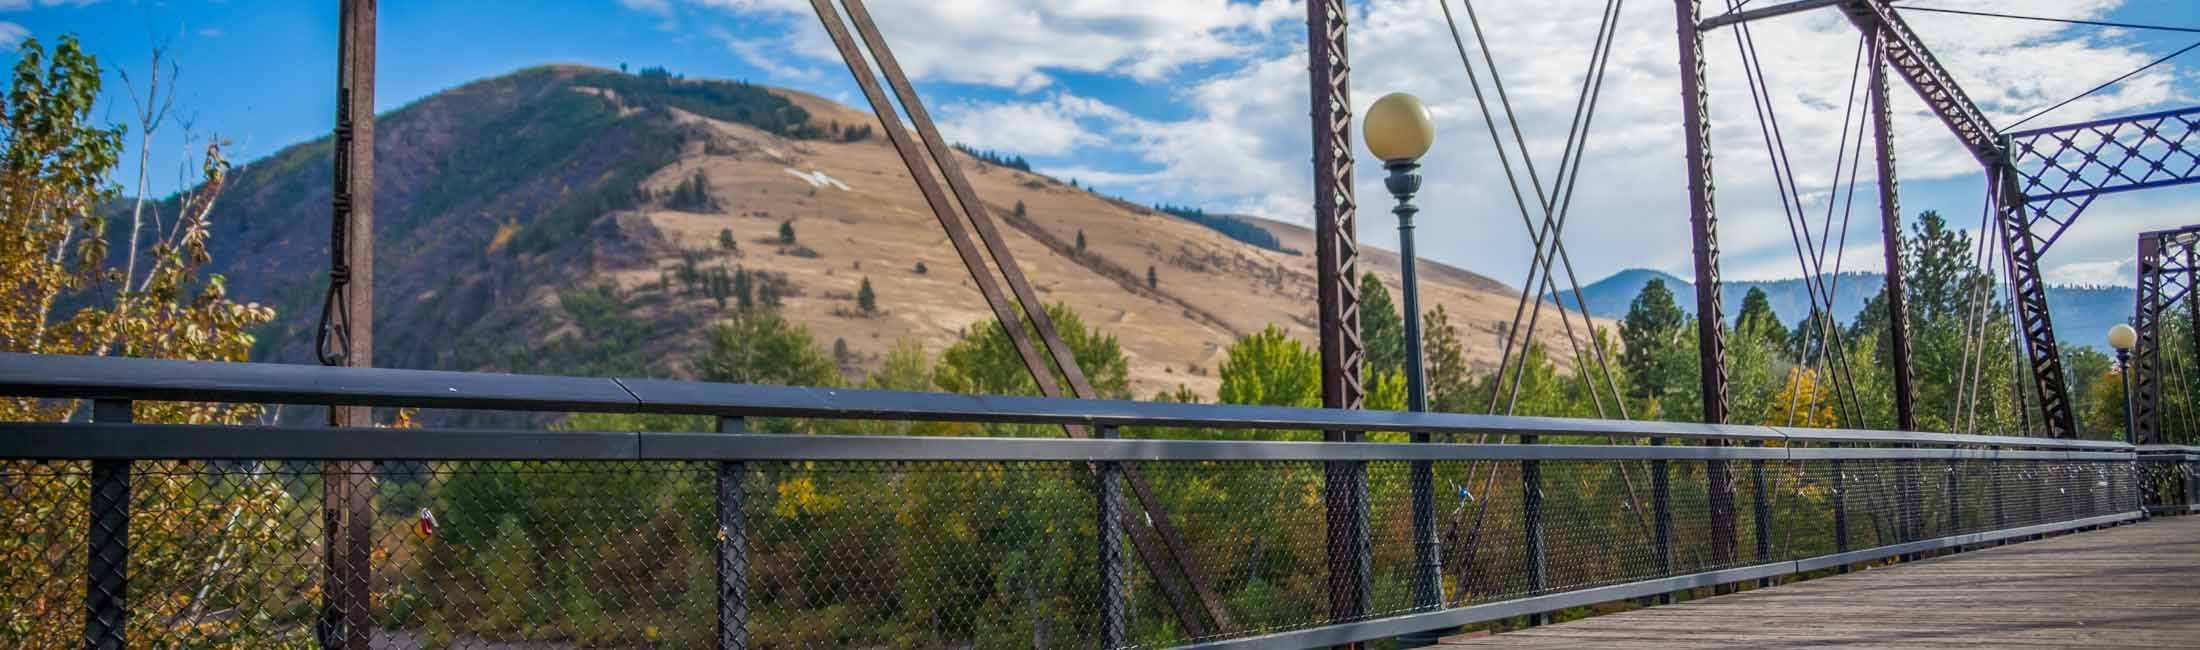 """What it Means to Be """"More Missoula"""" Than Ever in Times of Hardship"""